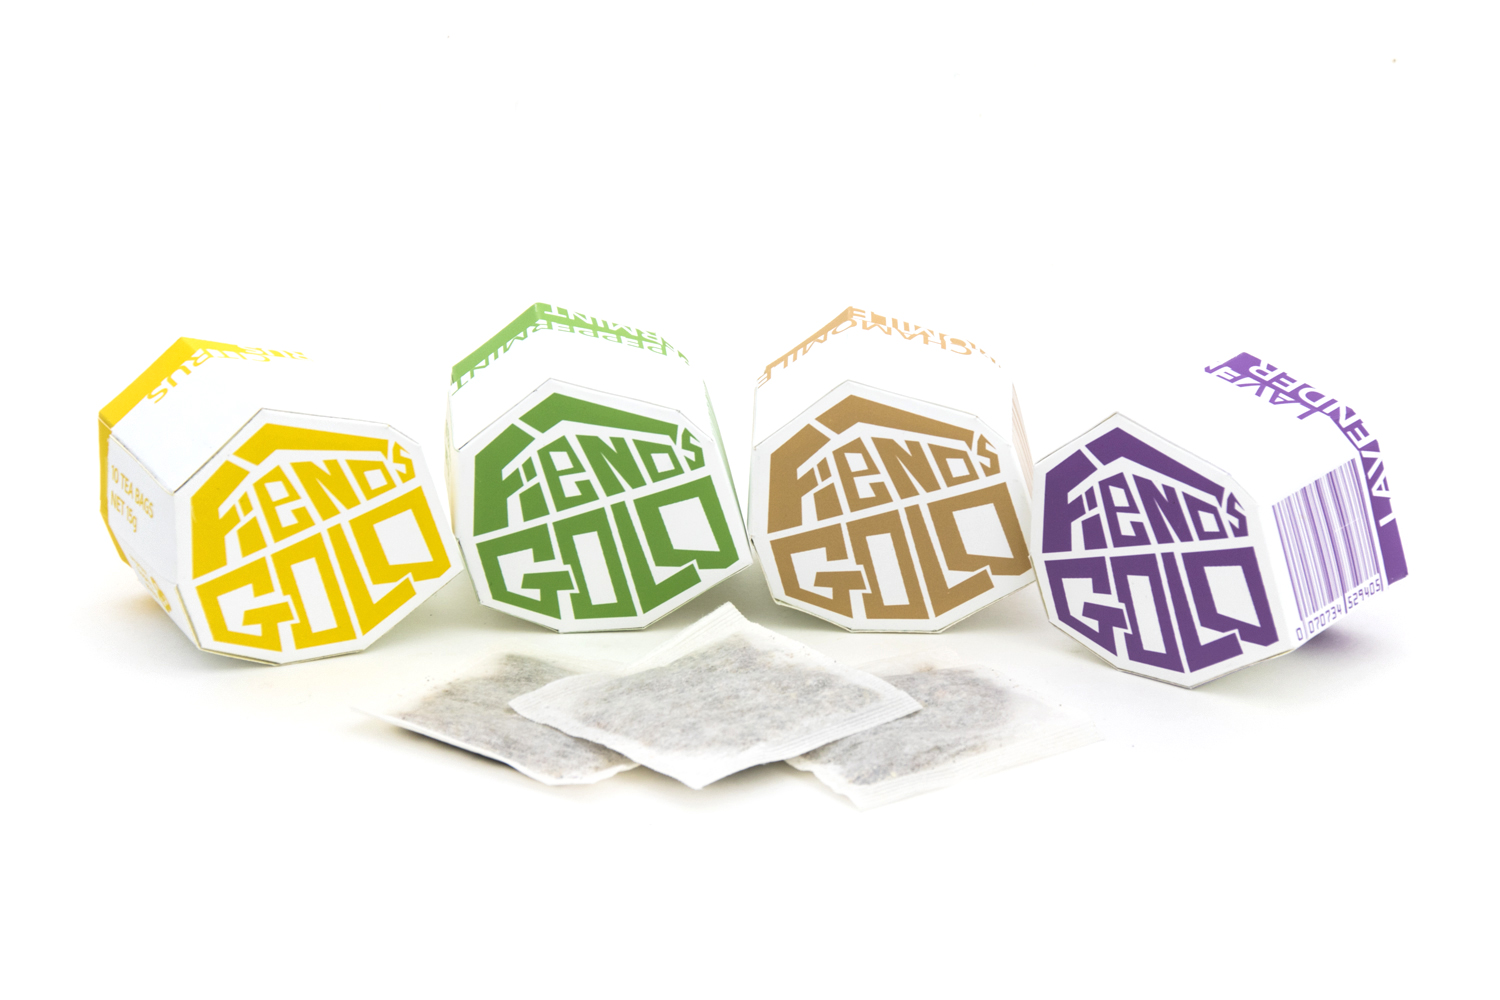 Fiends Gold Branded Tea Collection